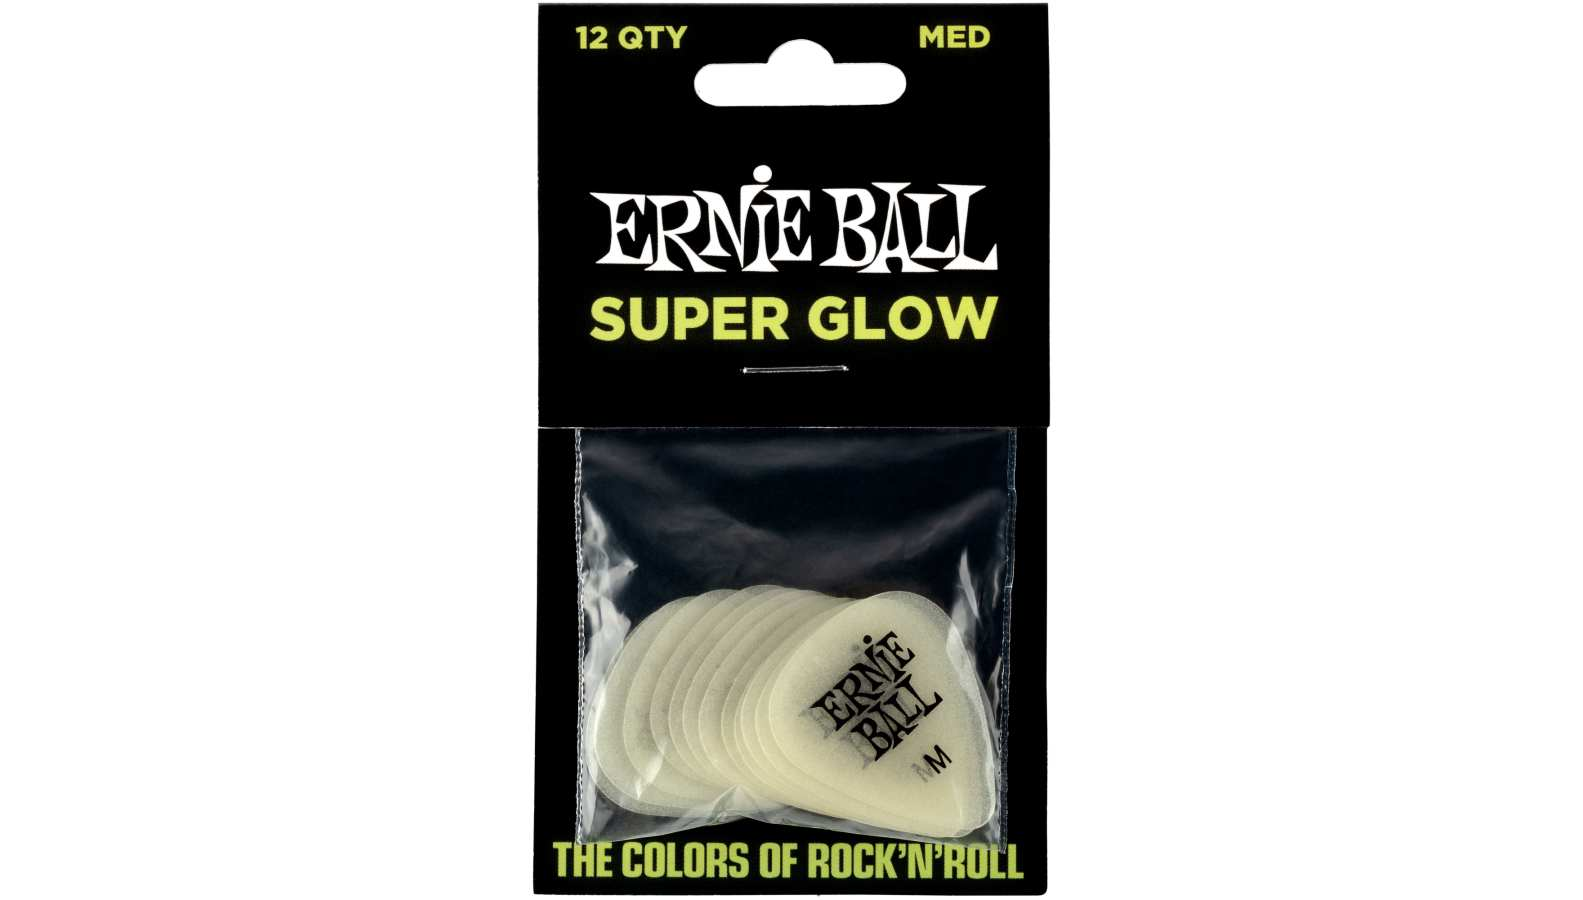 Ernie Ball EB9225 Picks Medium Glow in the Dark 12er